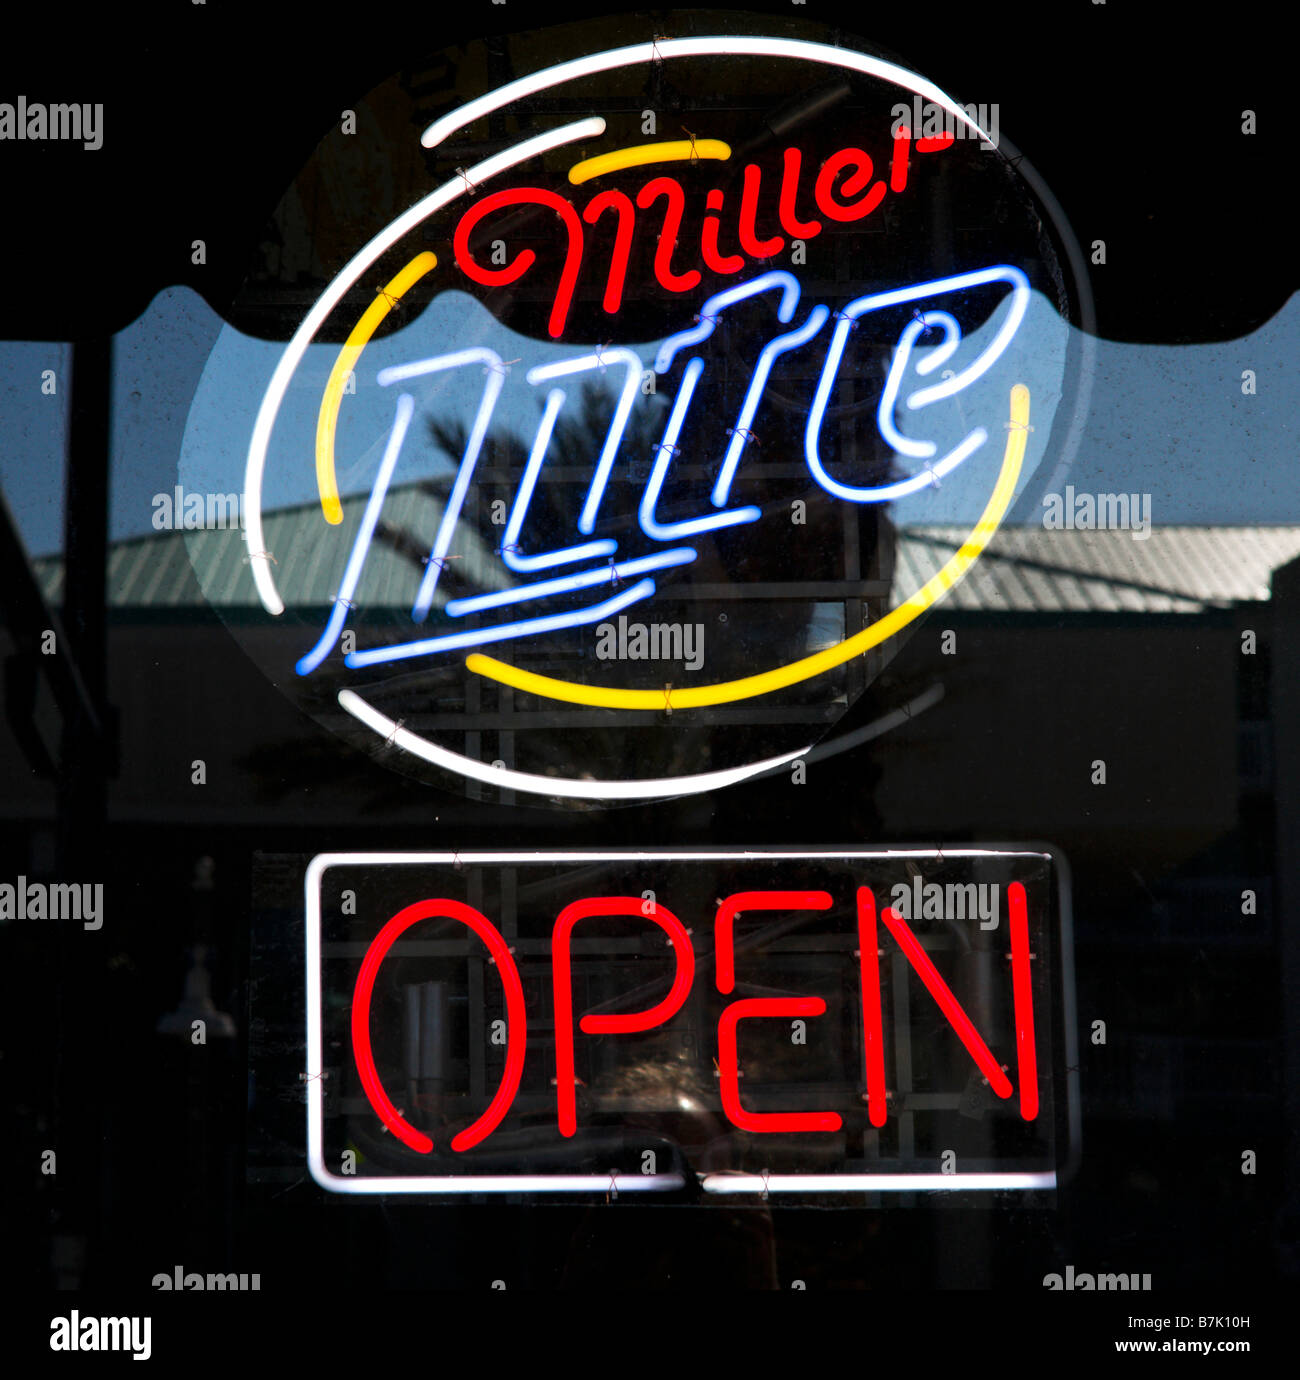 OPEN sign in the window of a bar in Daytona Beach, Florida, USA - Stock Image